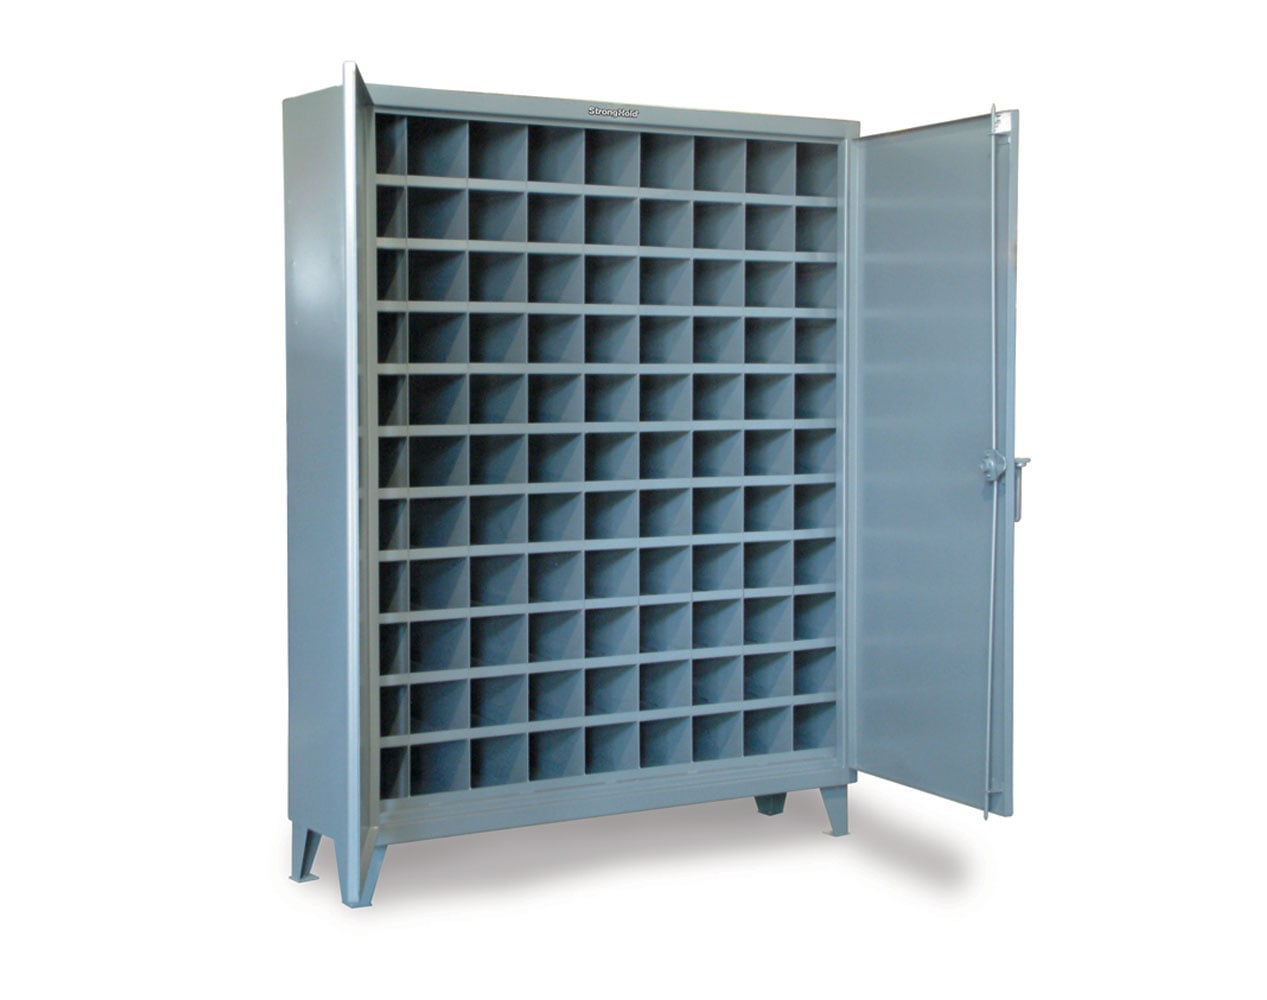 Extra Heavy Duty 12 GA Cabinet with 99 Pigeonhole Shelving – 60 in. W x 16 in. D x 78 in. H